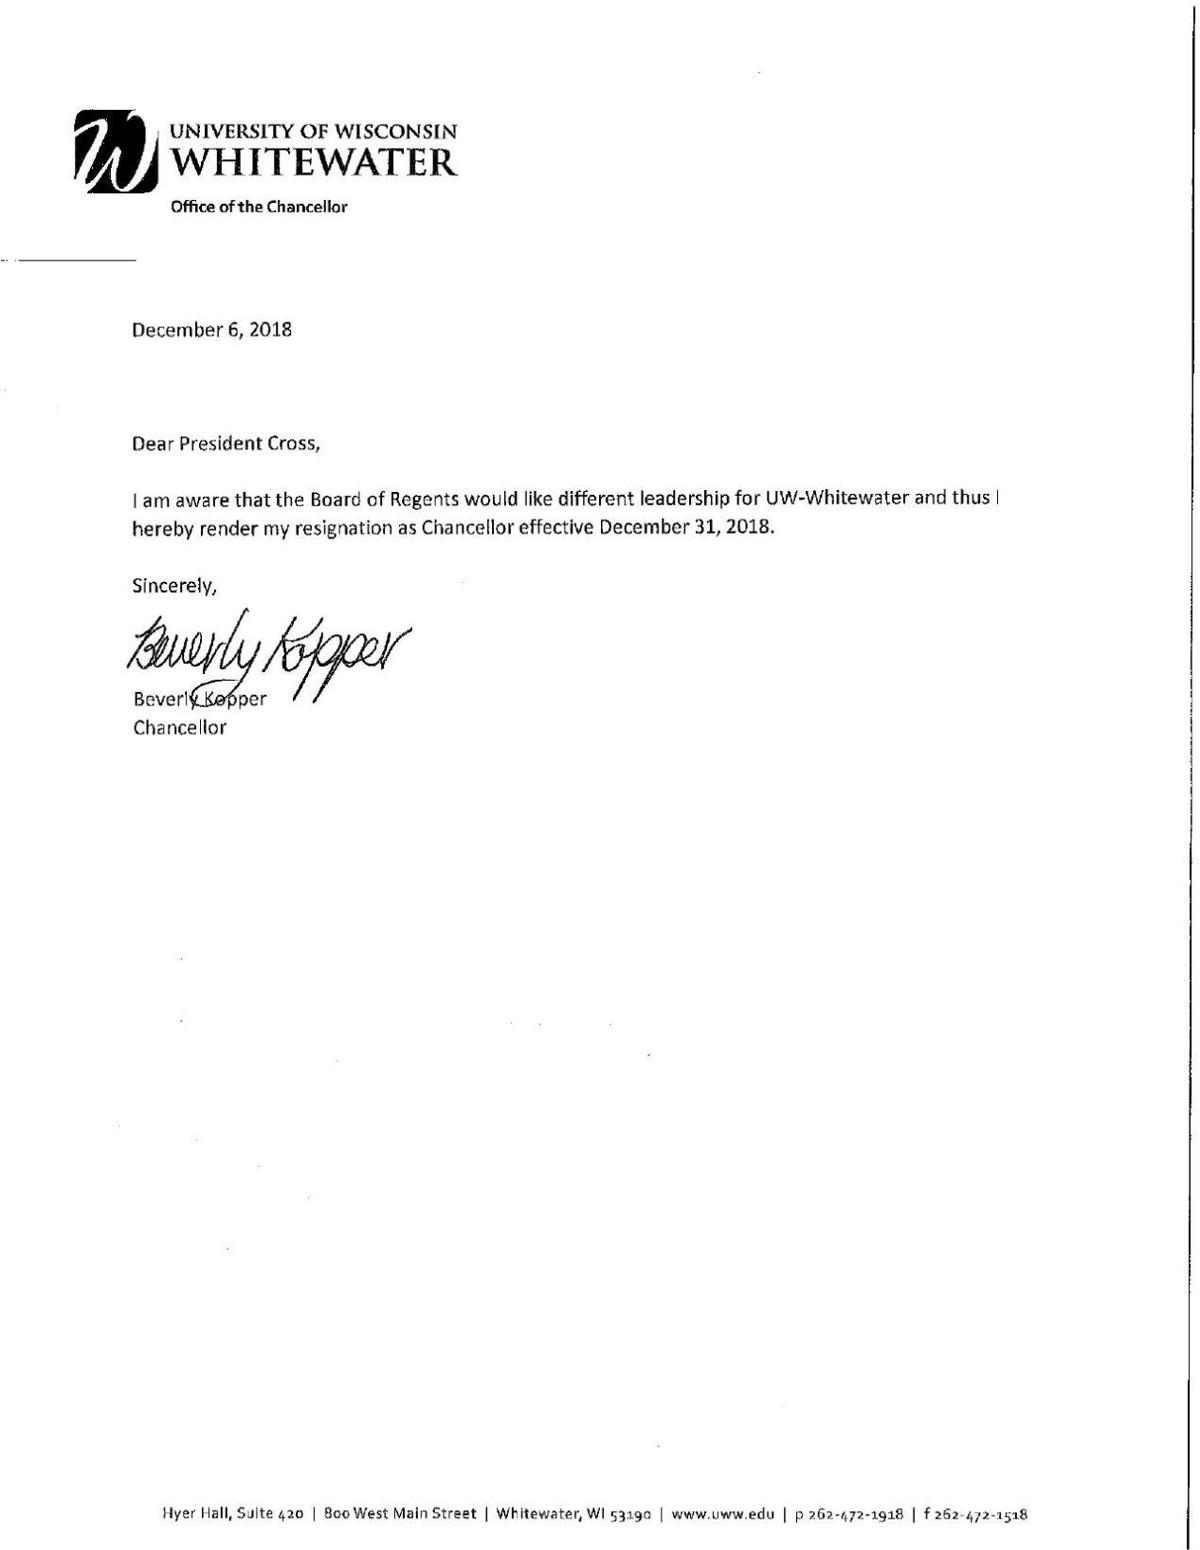 UW-Whitewater chancellor's resignation letter.pdf